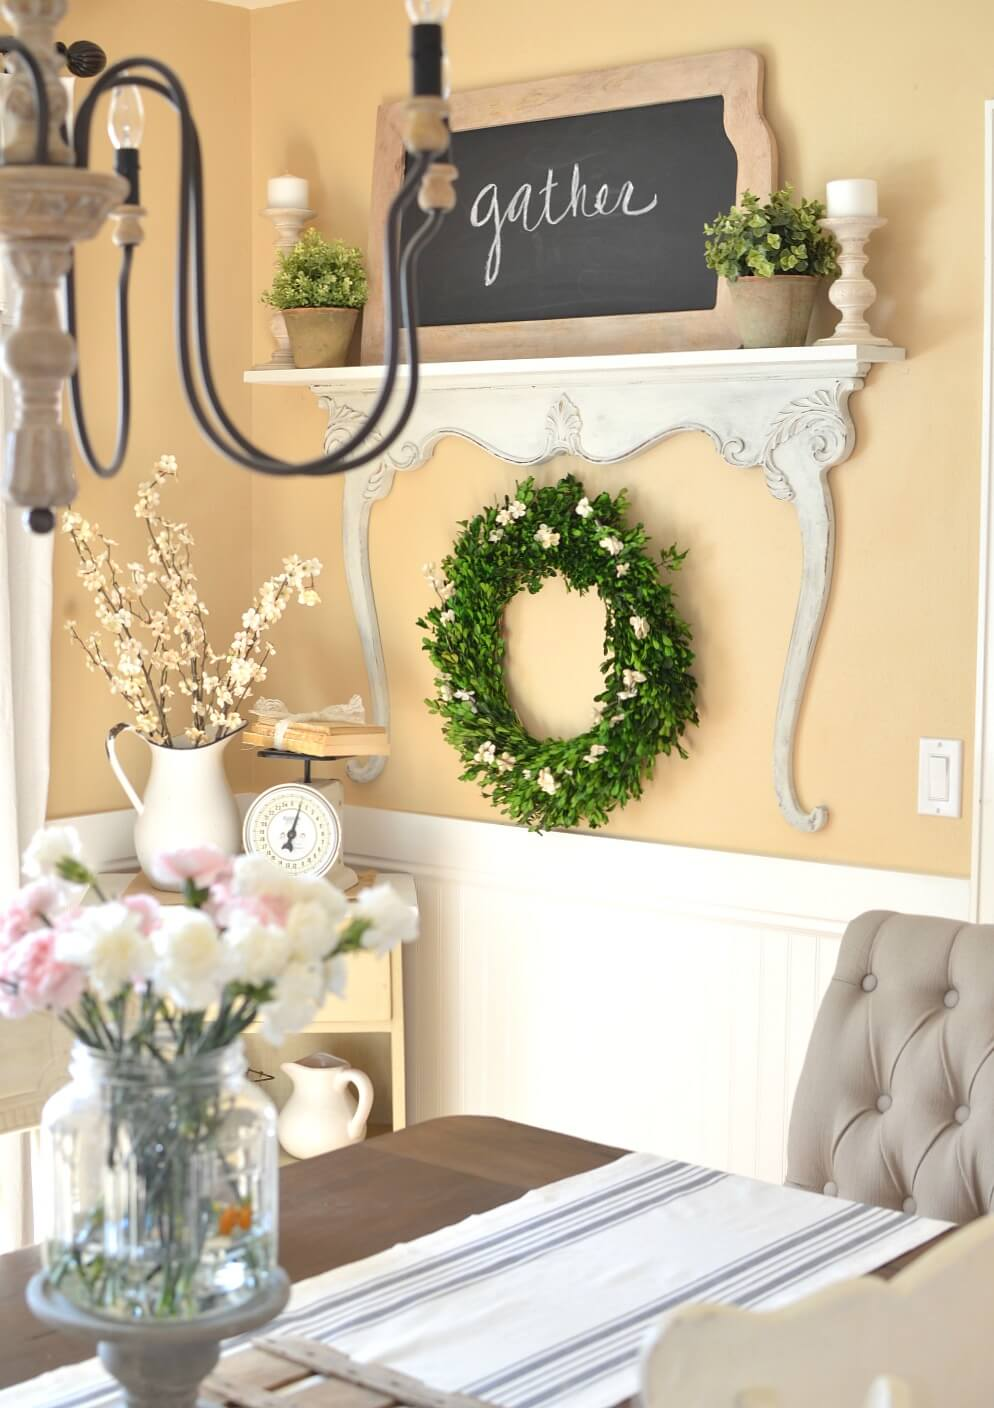 Top 29 Diy Ideas Adding Rustic Farmhouse Feels To Kitchen: 35+ Rustic Farmhouse Spring Decor Ideas To Add A Unique Touch To Your Home This Season In 2020